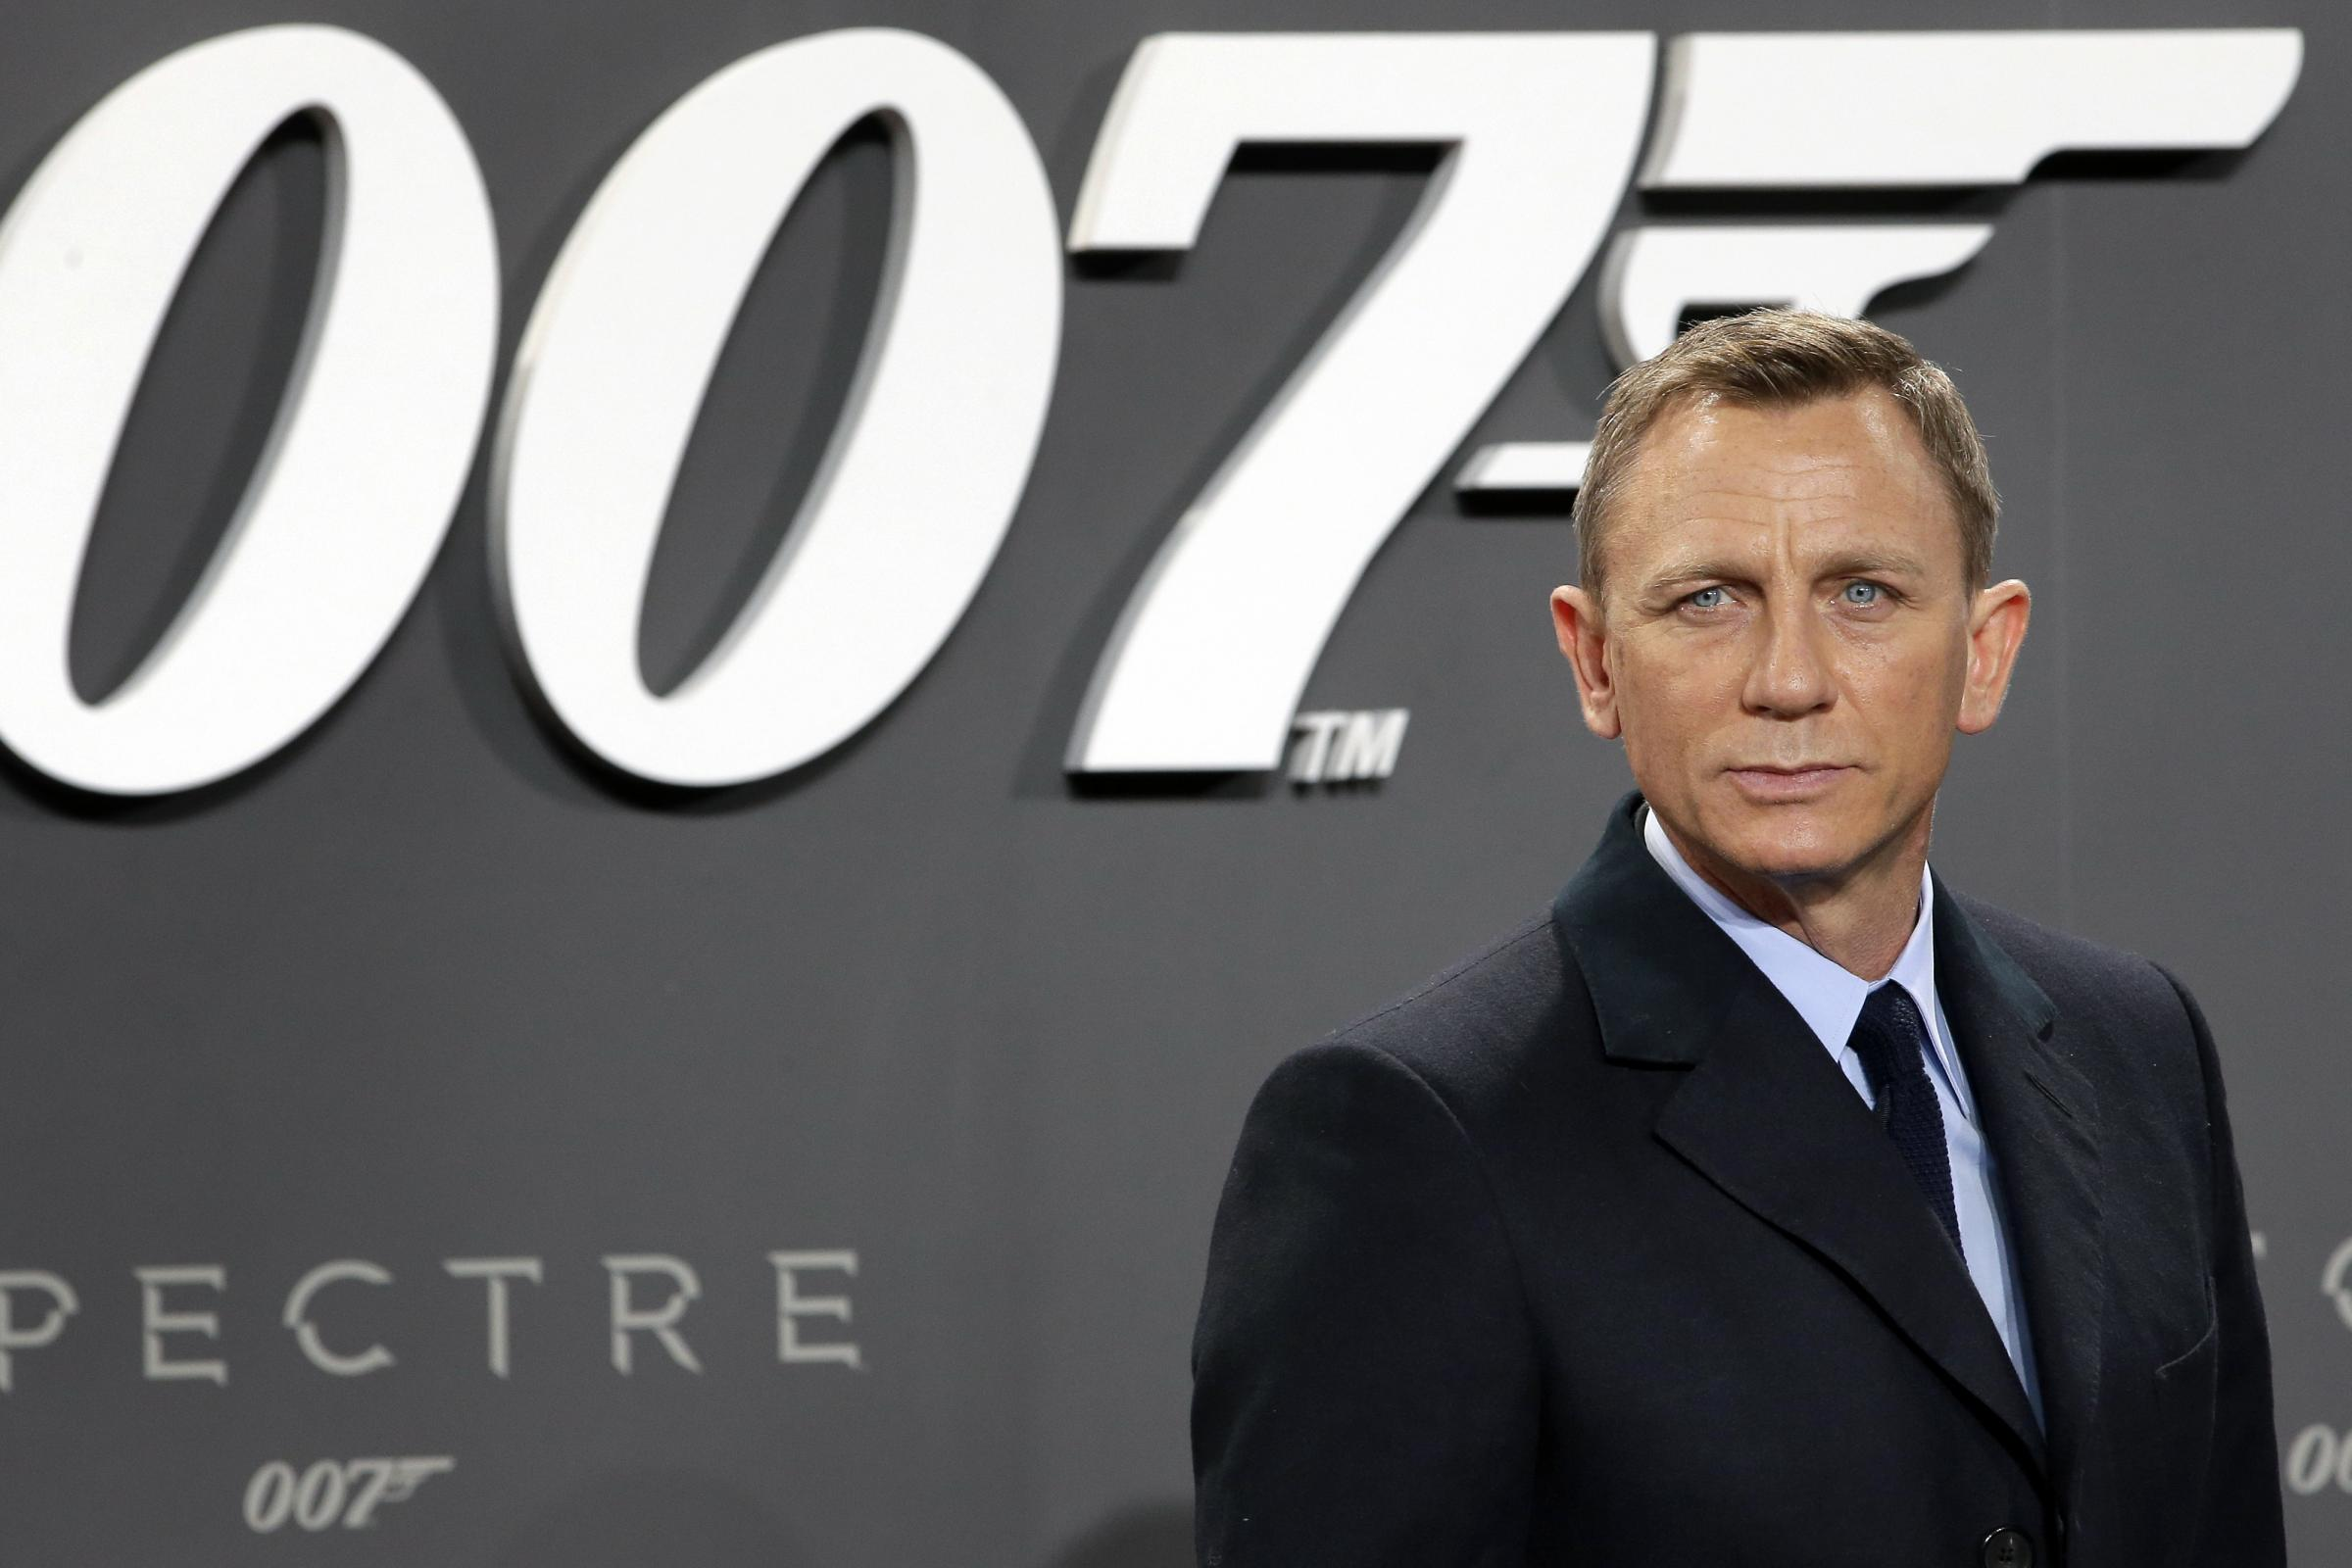 This Scottish actor is fan-favourite to be the next James Bond